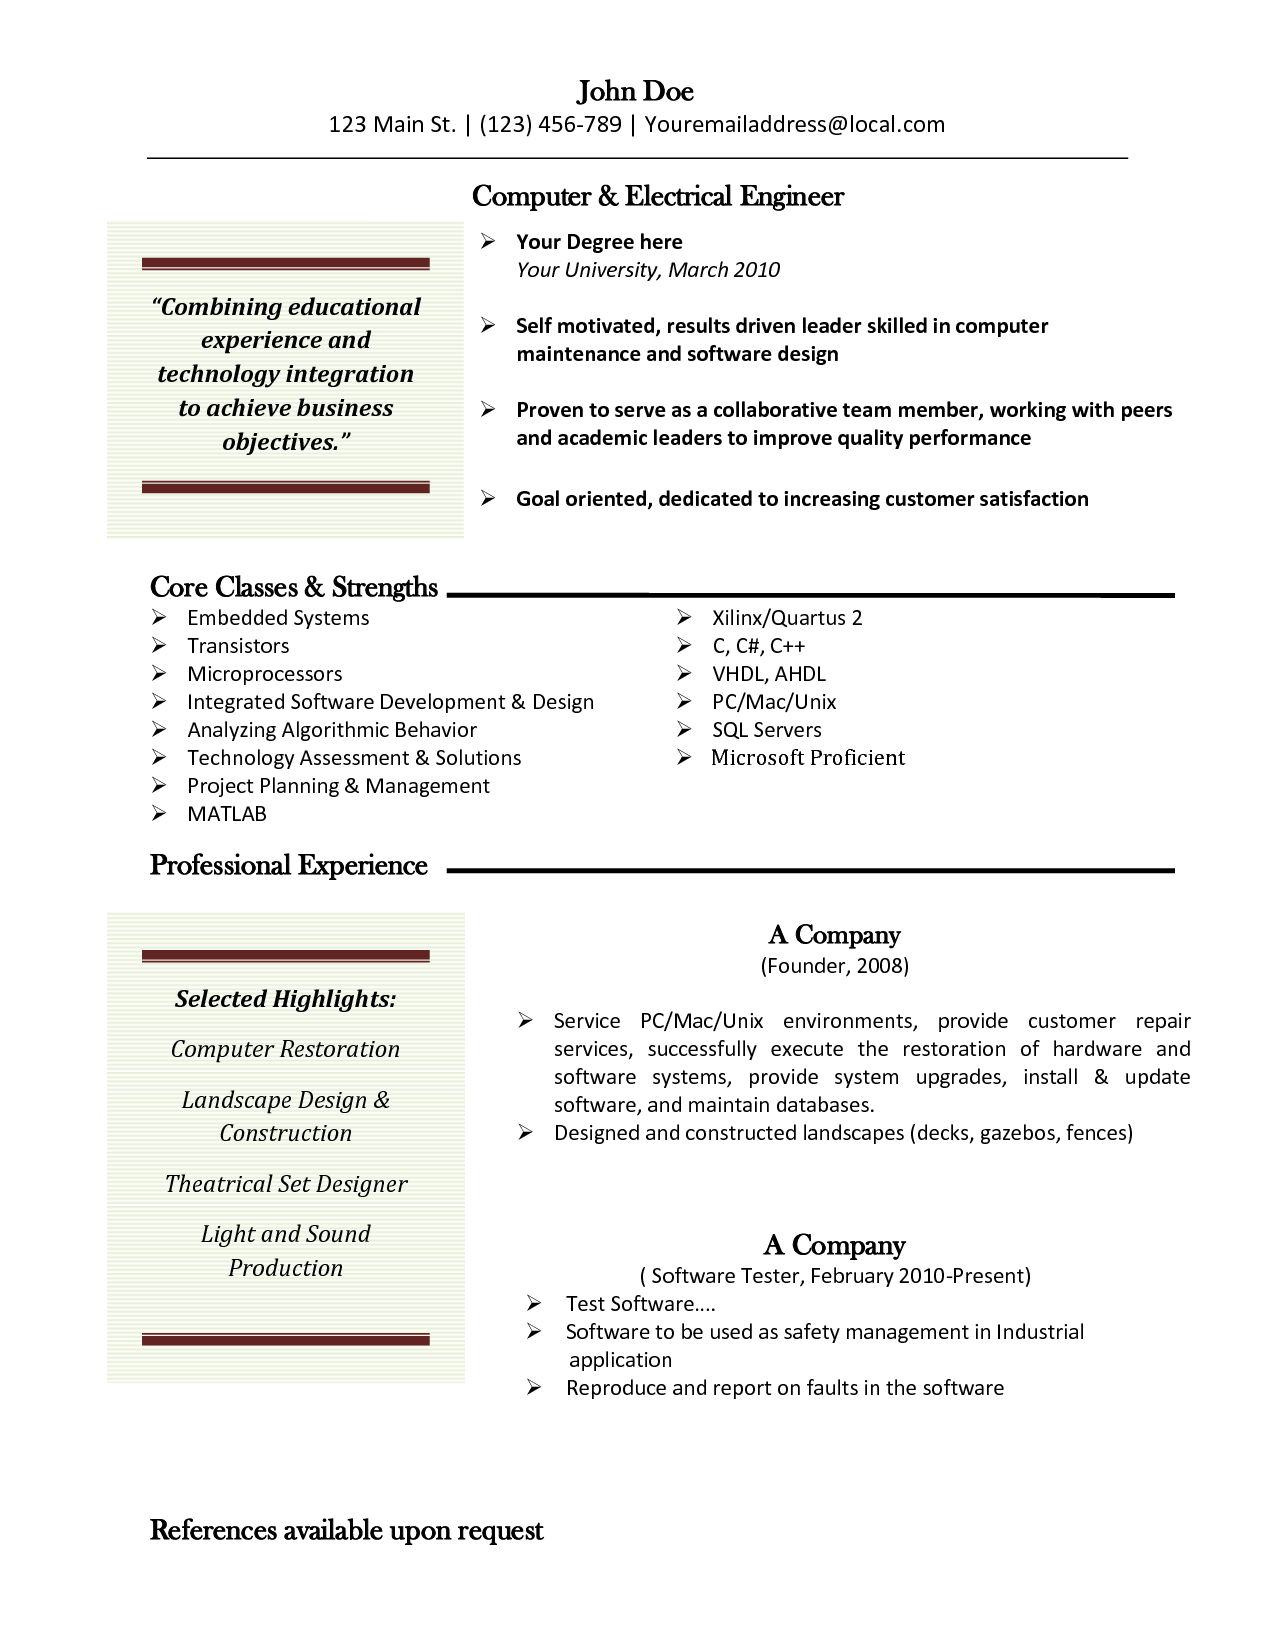 Bon Free Resume Templates For Mac Best TemplateFree Resume Templates Cover  Letter Examples